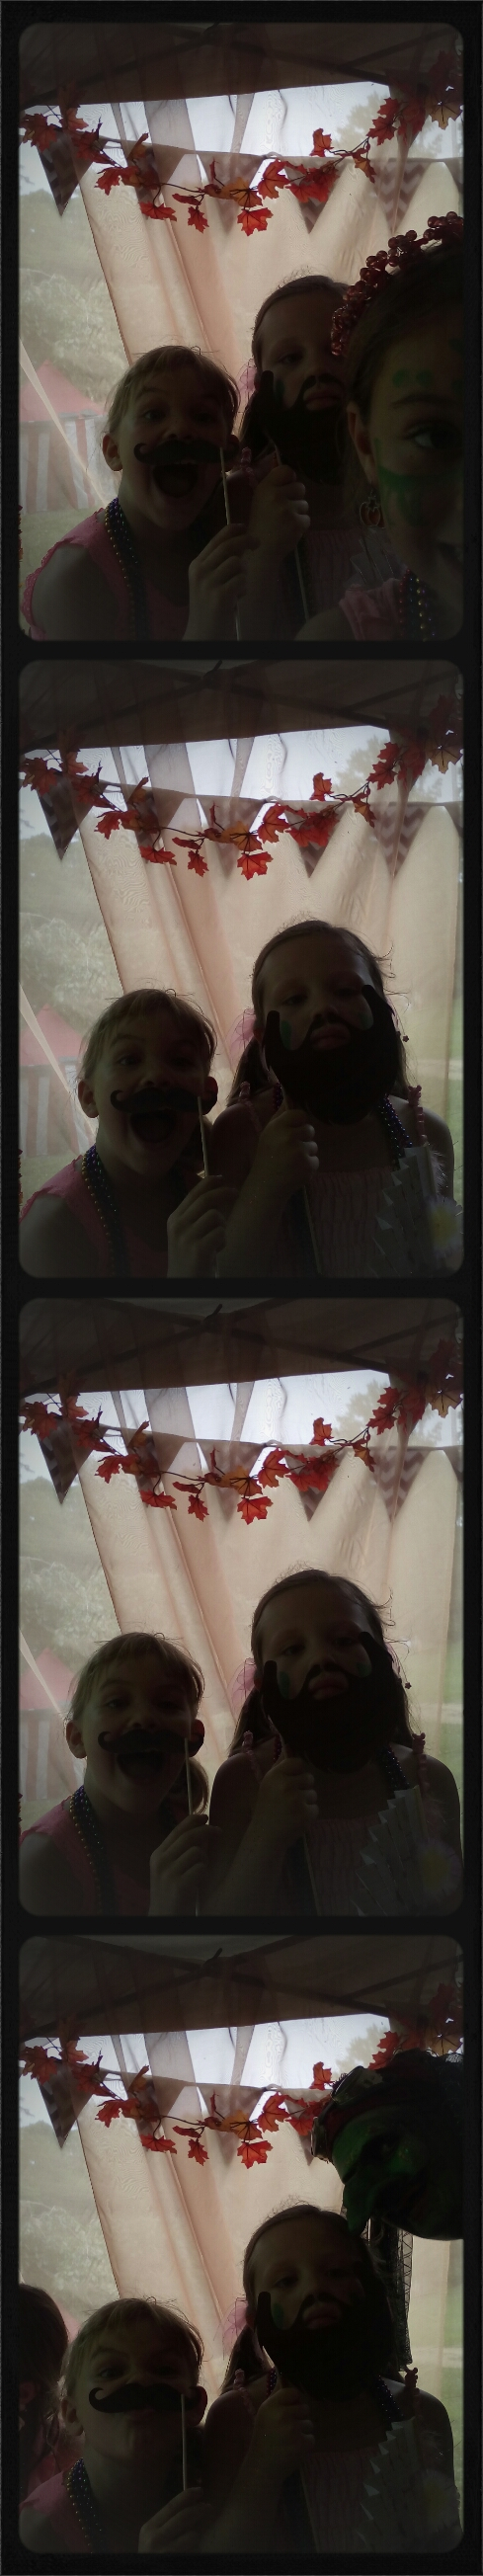 Pocketbooth_20150613142307